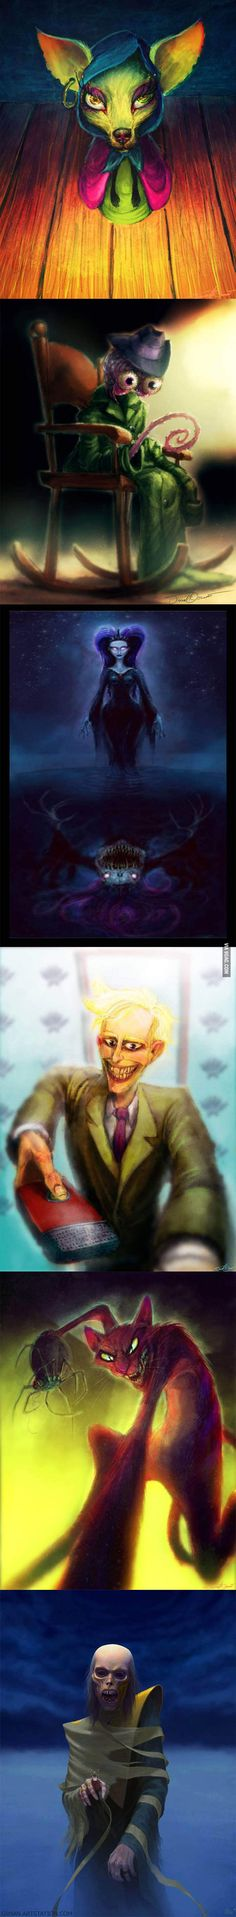 Courage the Cowardly Dog Villains realistic art. - 9GAG